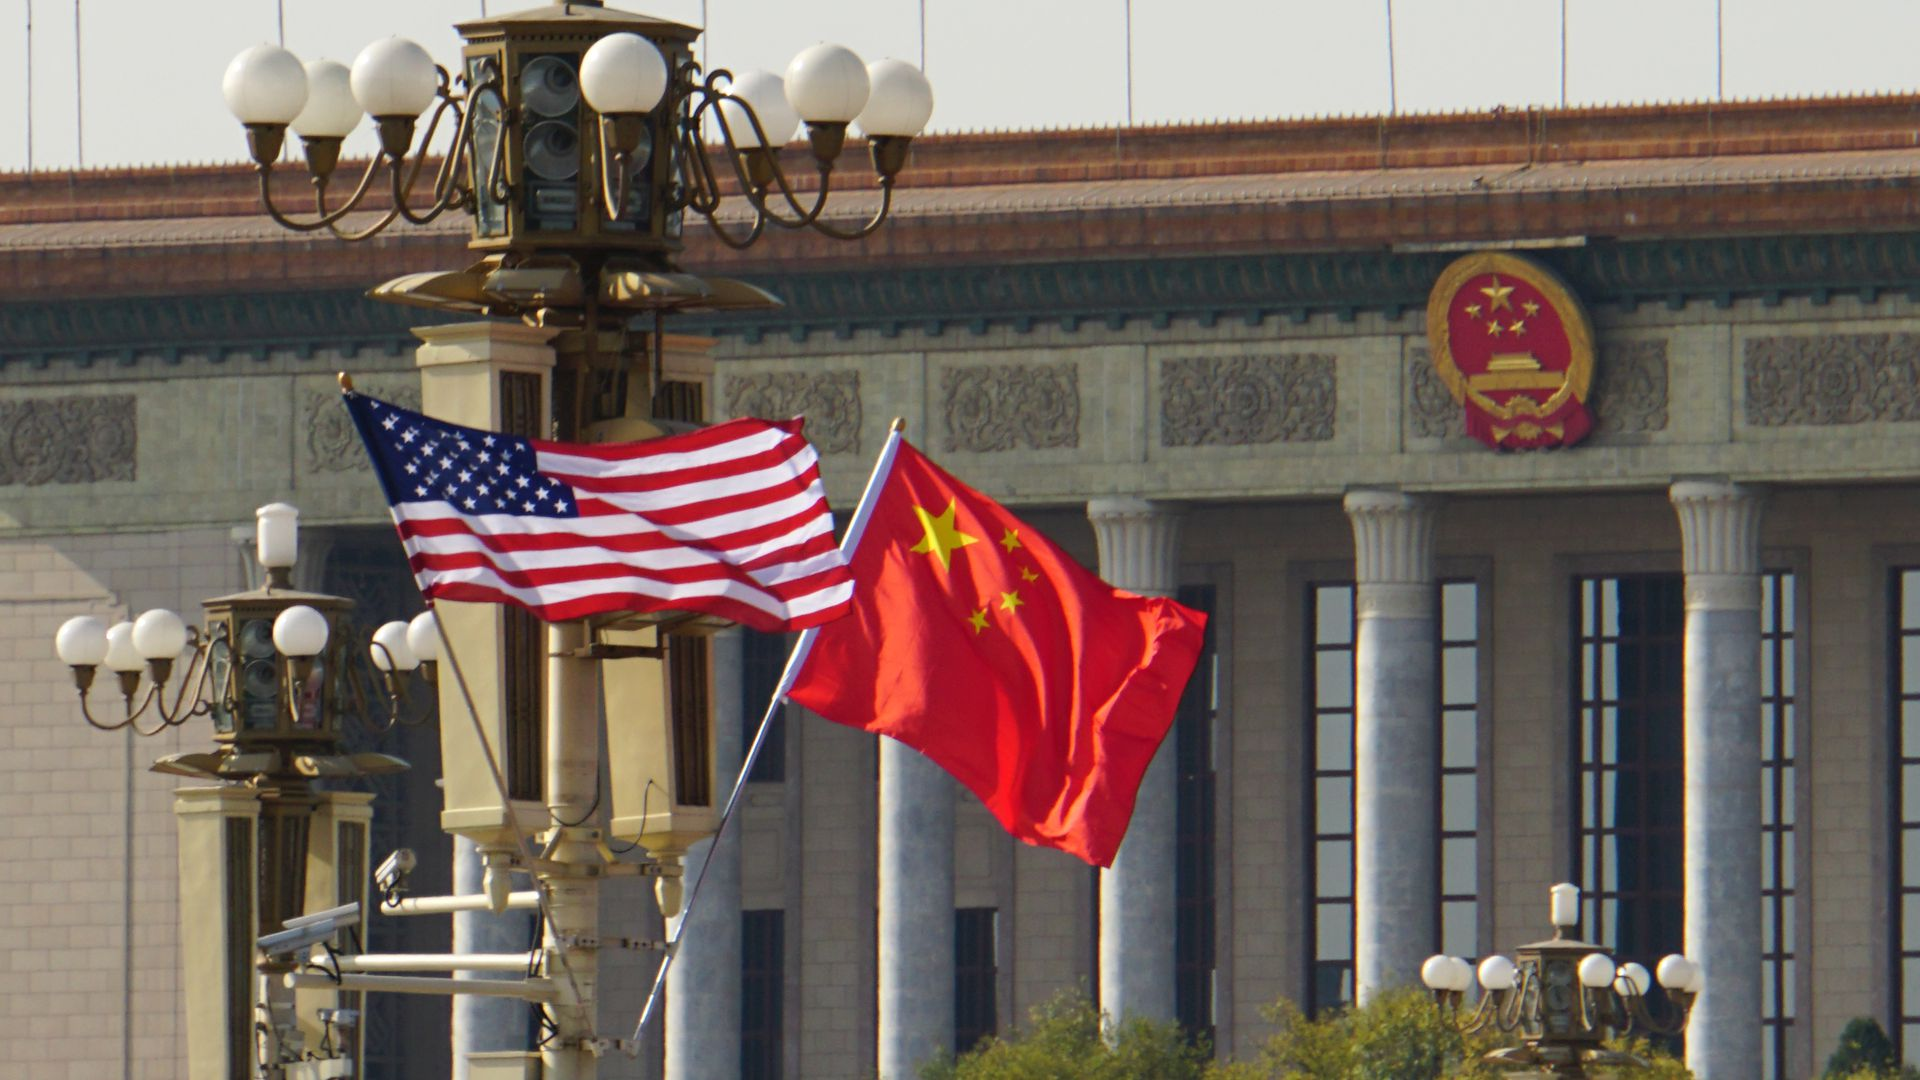 U.S. and Chinese flags flying together in Beijing in November before tensions ratcheted up